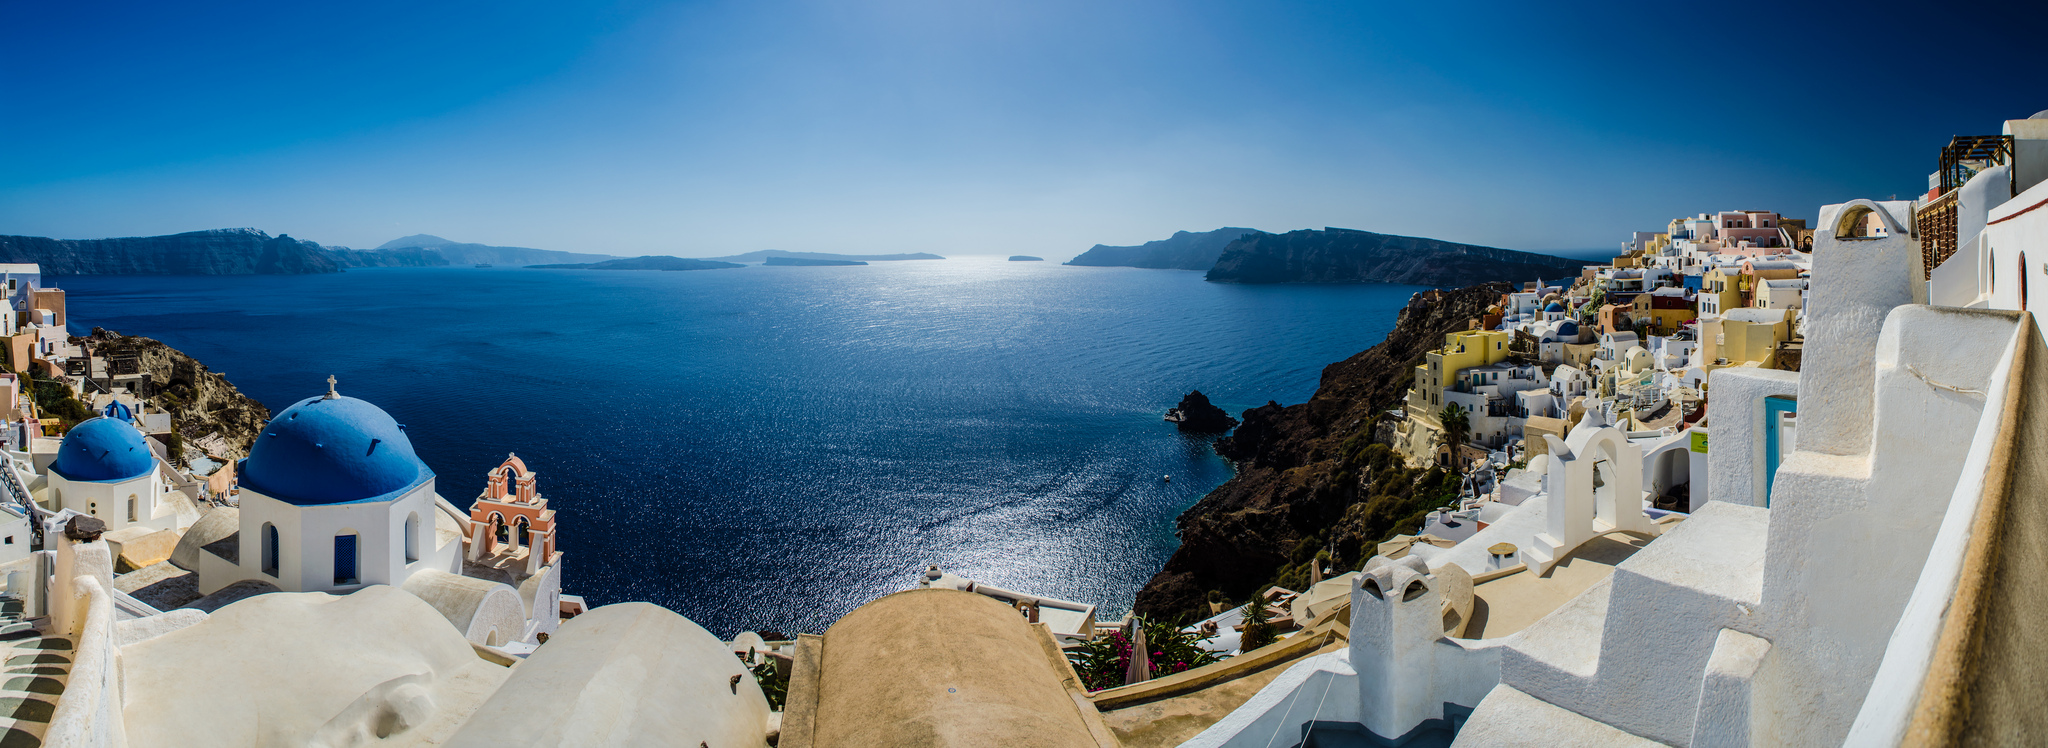 Santorini_Greece_Санторини_Греция_обои_